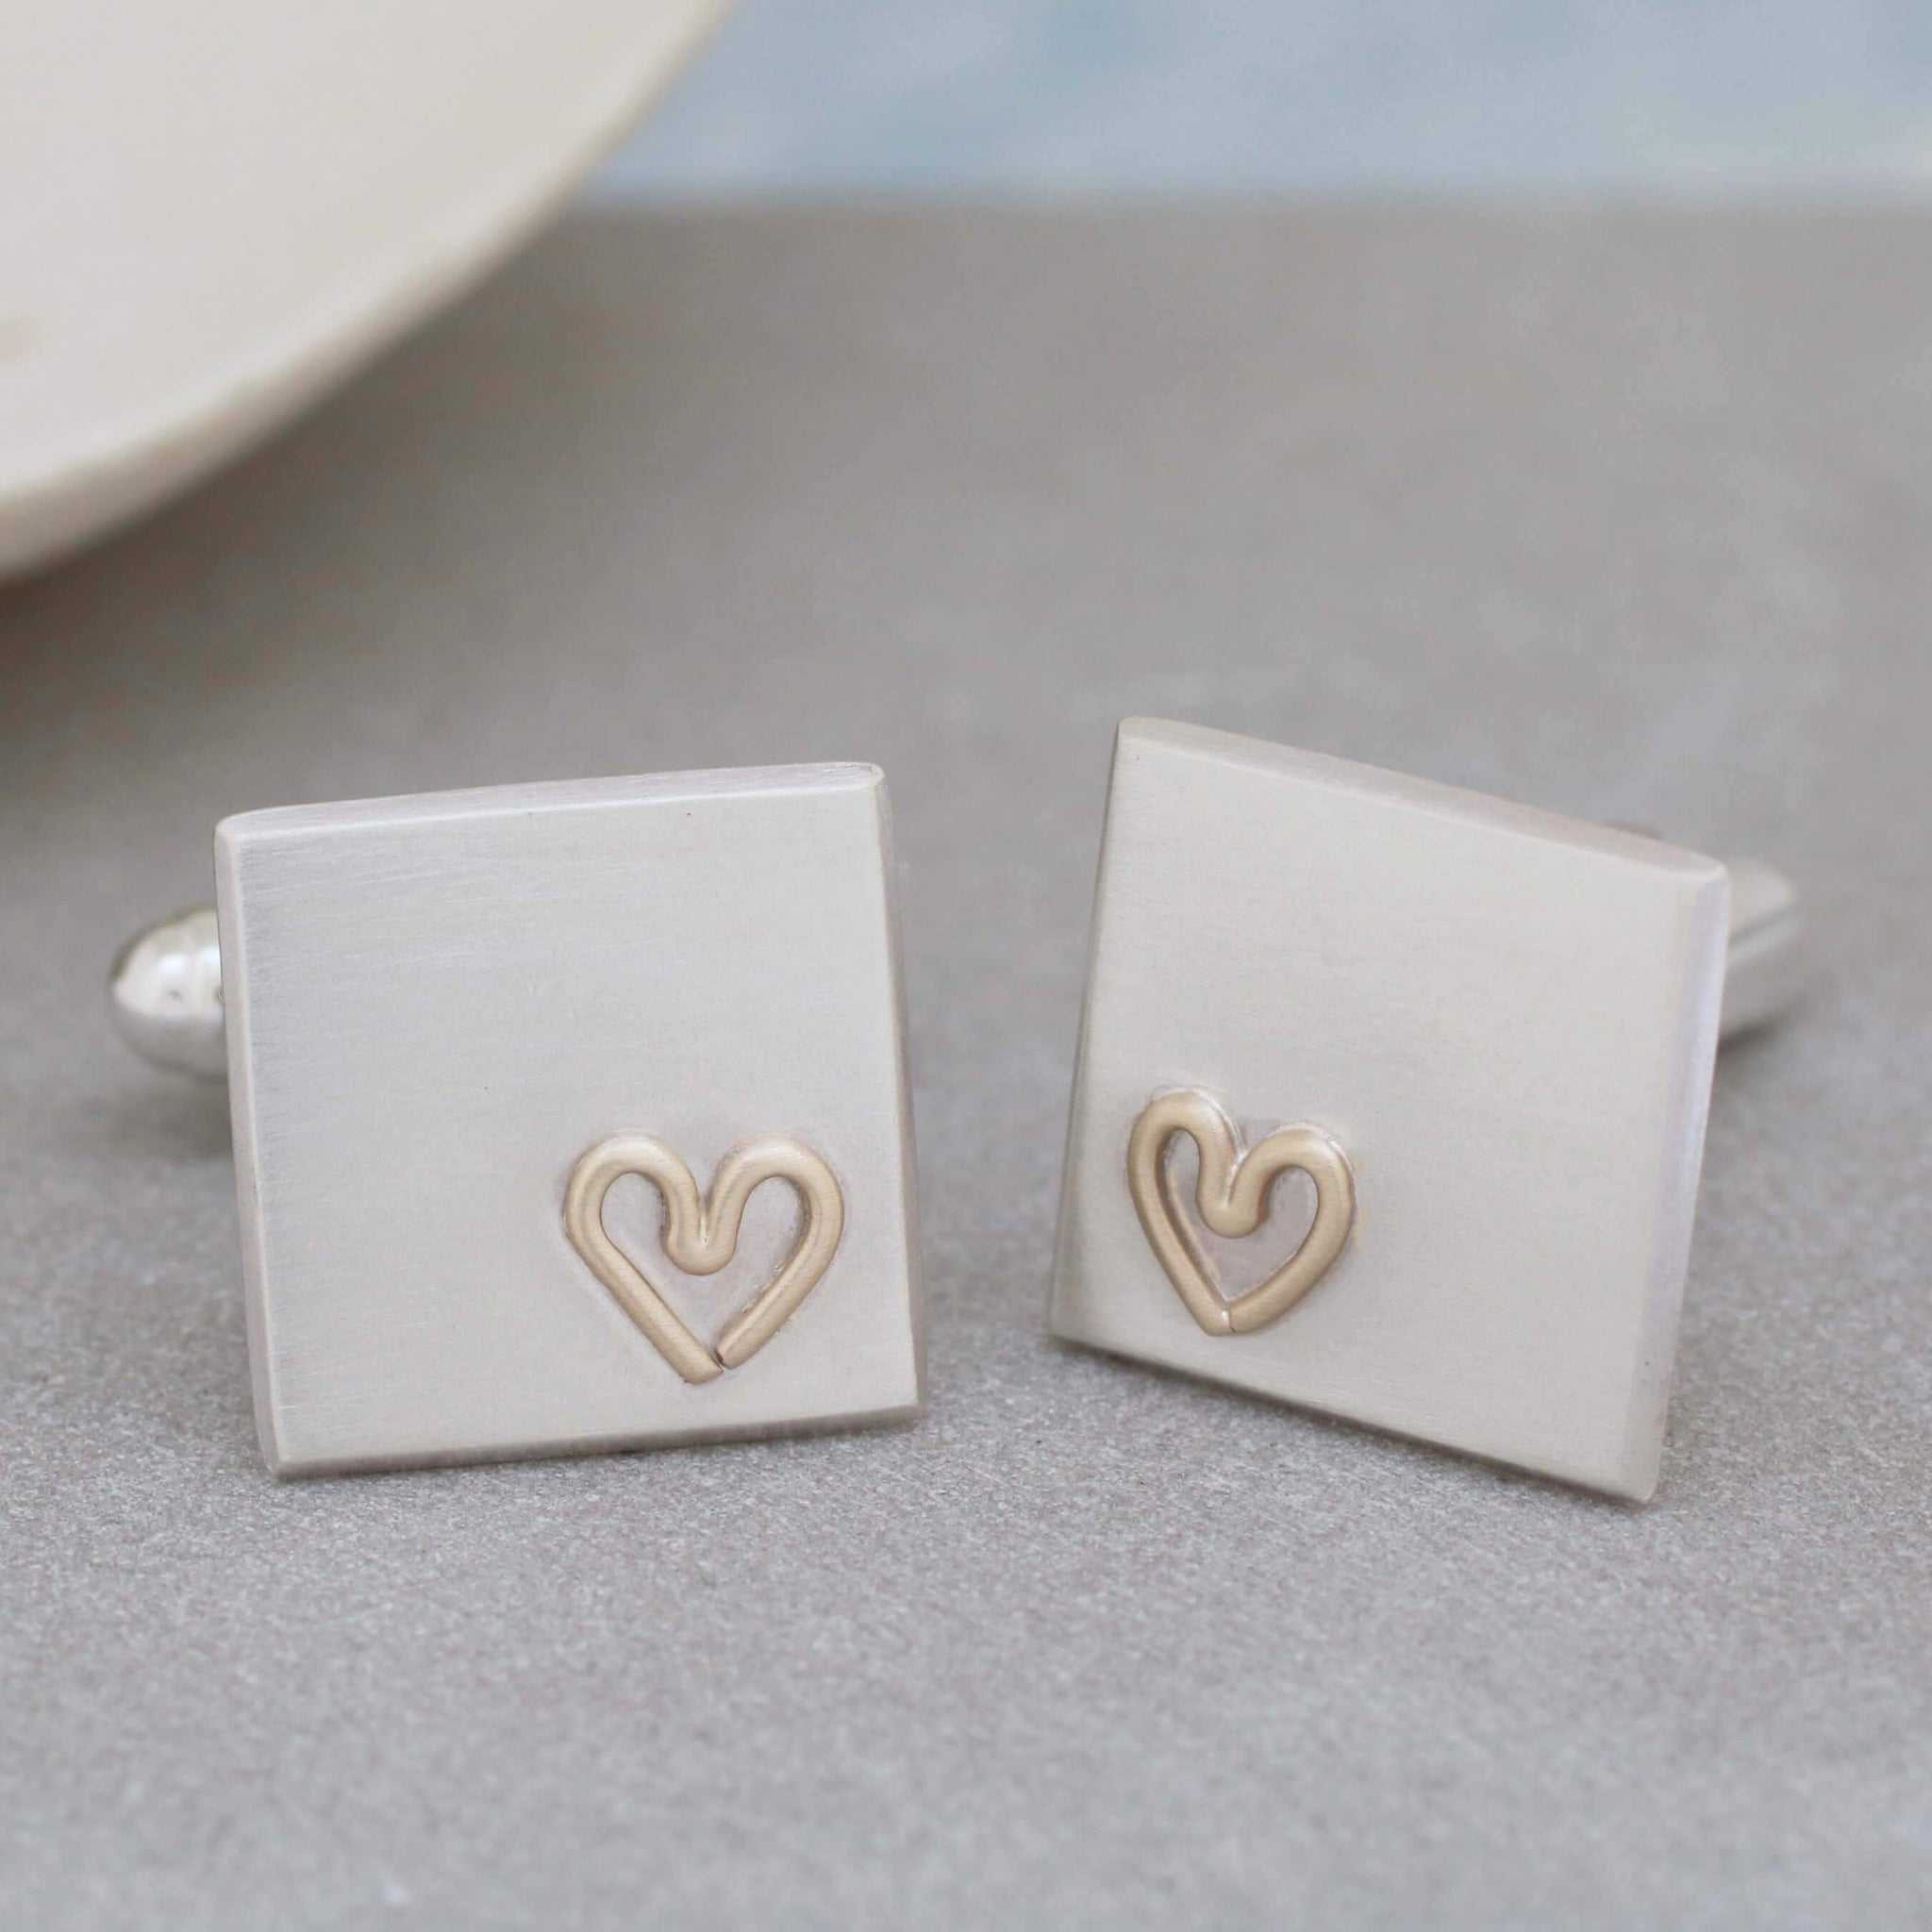 Gold Heart cufflinks gift